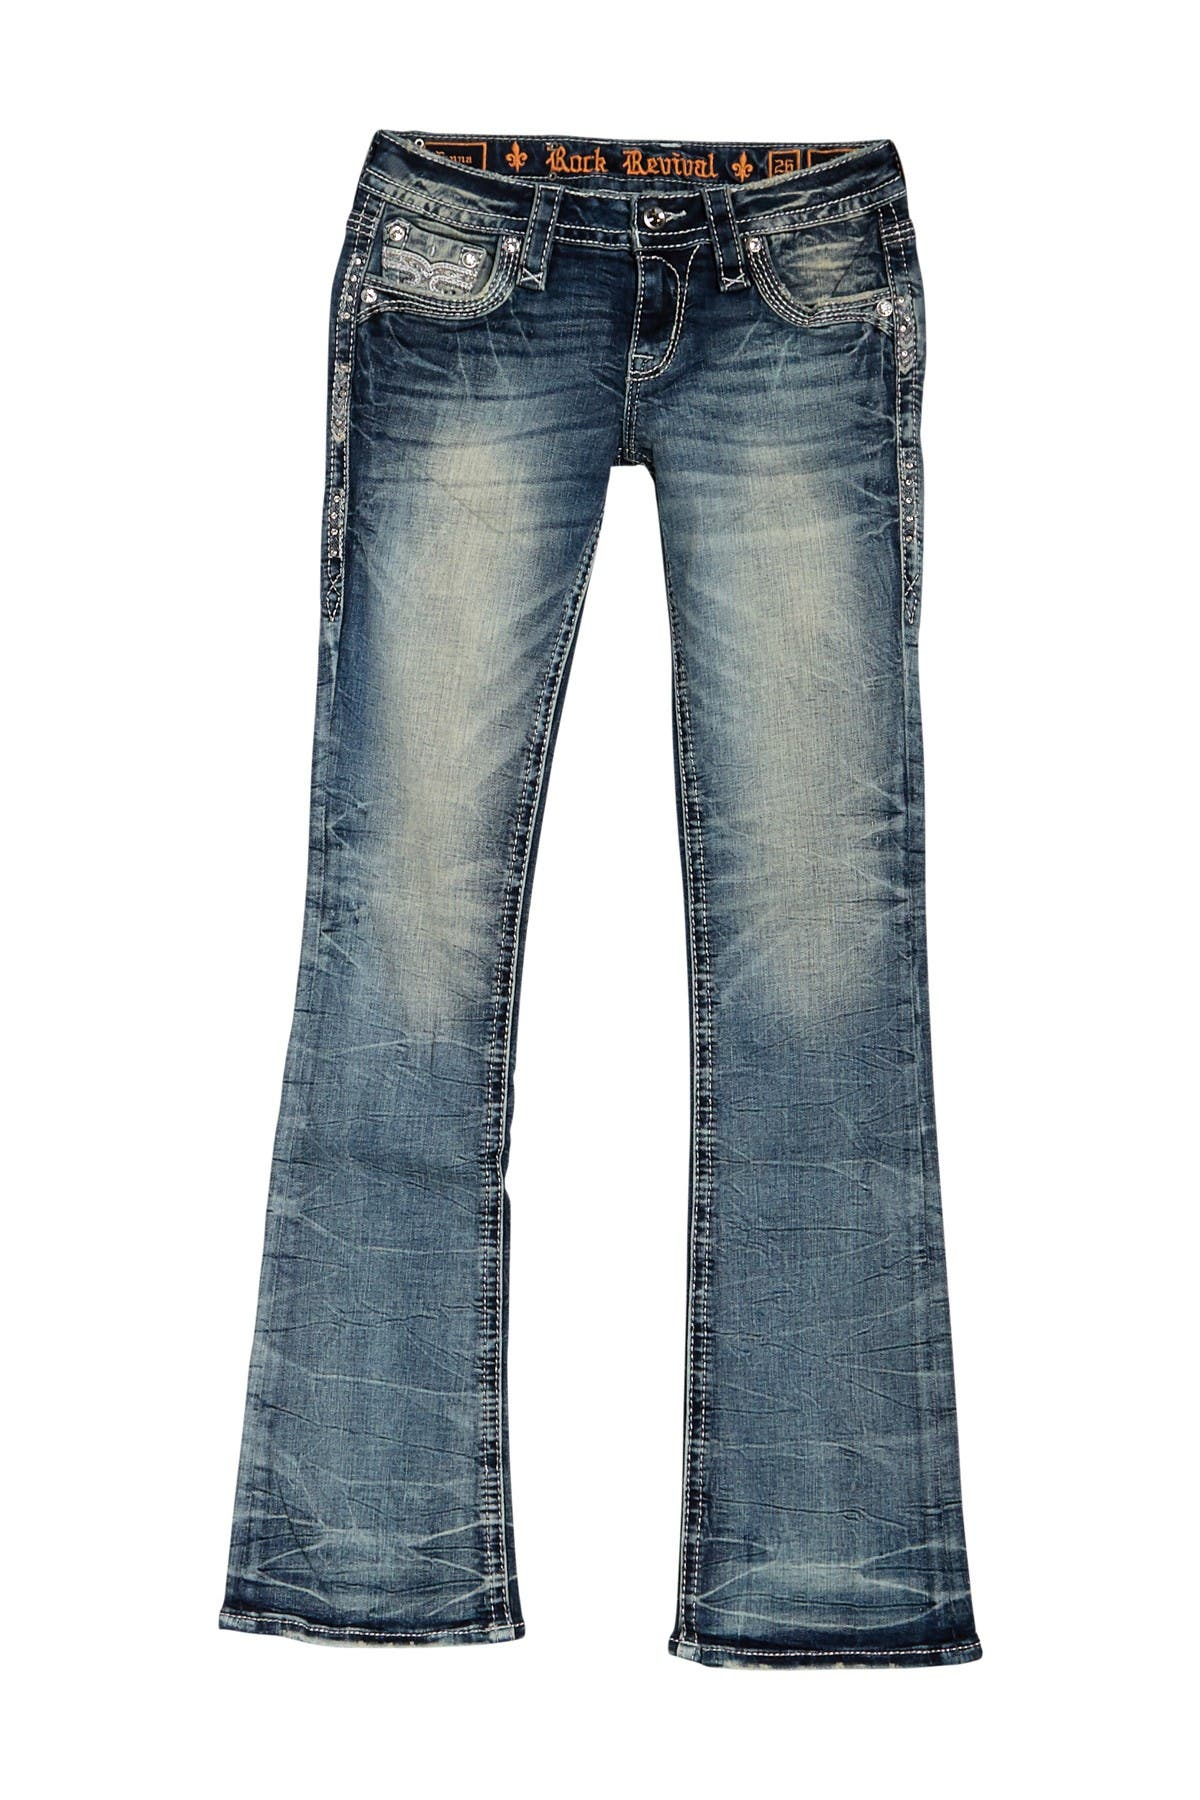 Image of Rock Revival Bootcut Jeans